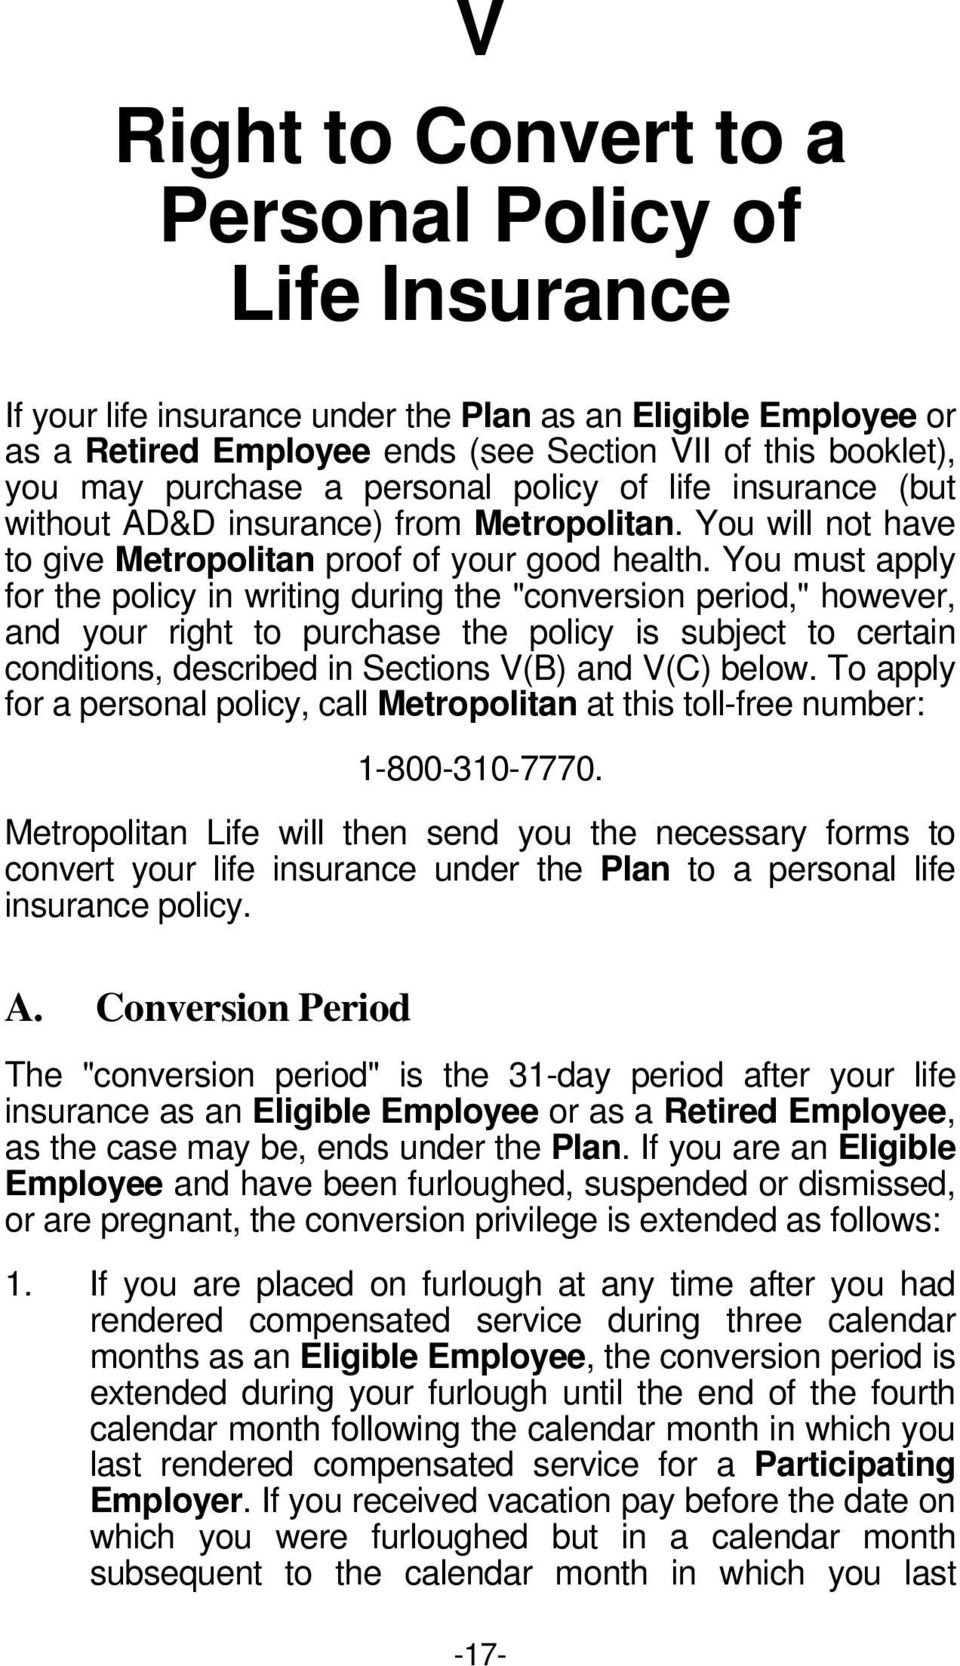 "You must apply for the policy in writing during the ""conversion period,"" however, and your right to purchase the policy is subject to certain conditions, described in Sections V(B) and V(C) below."